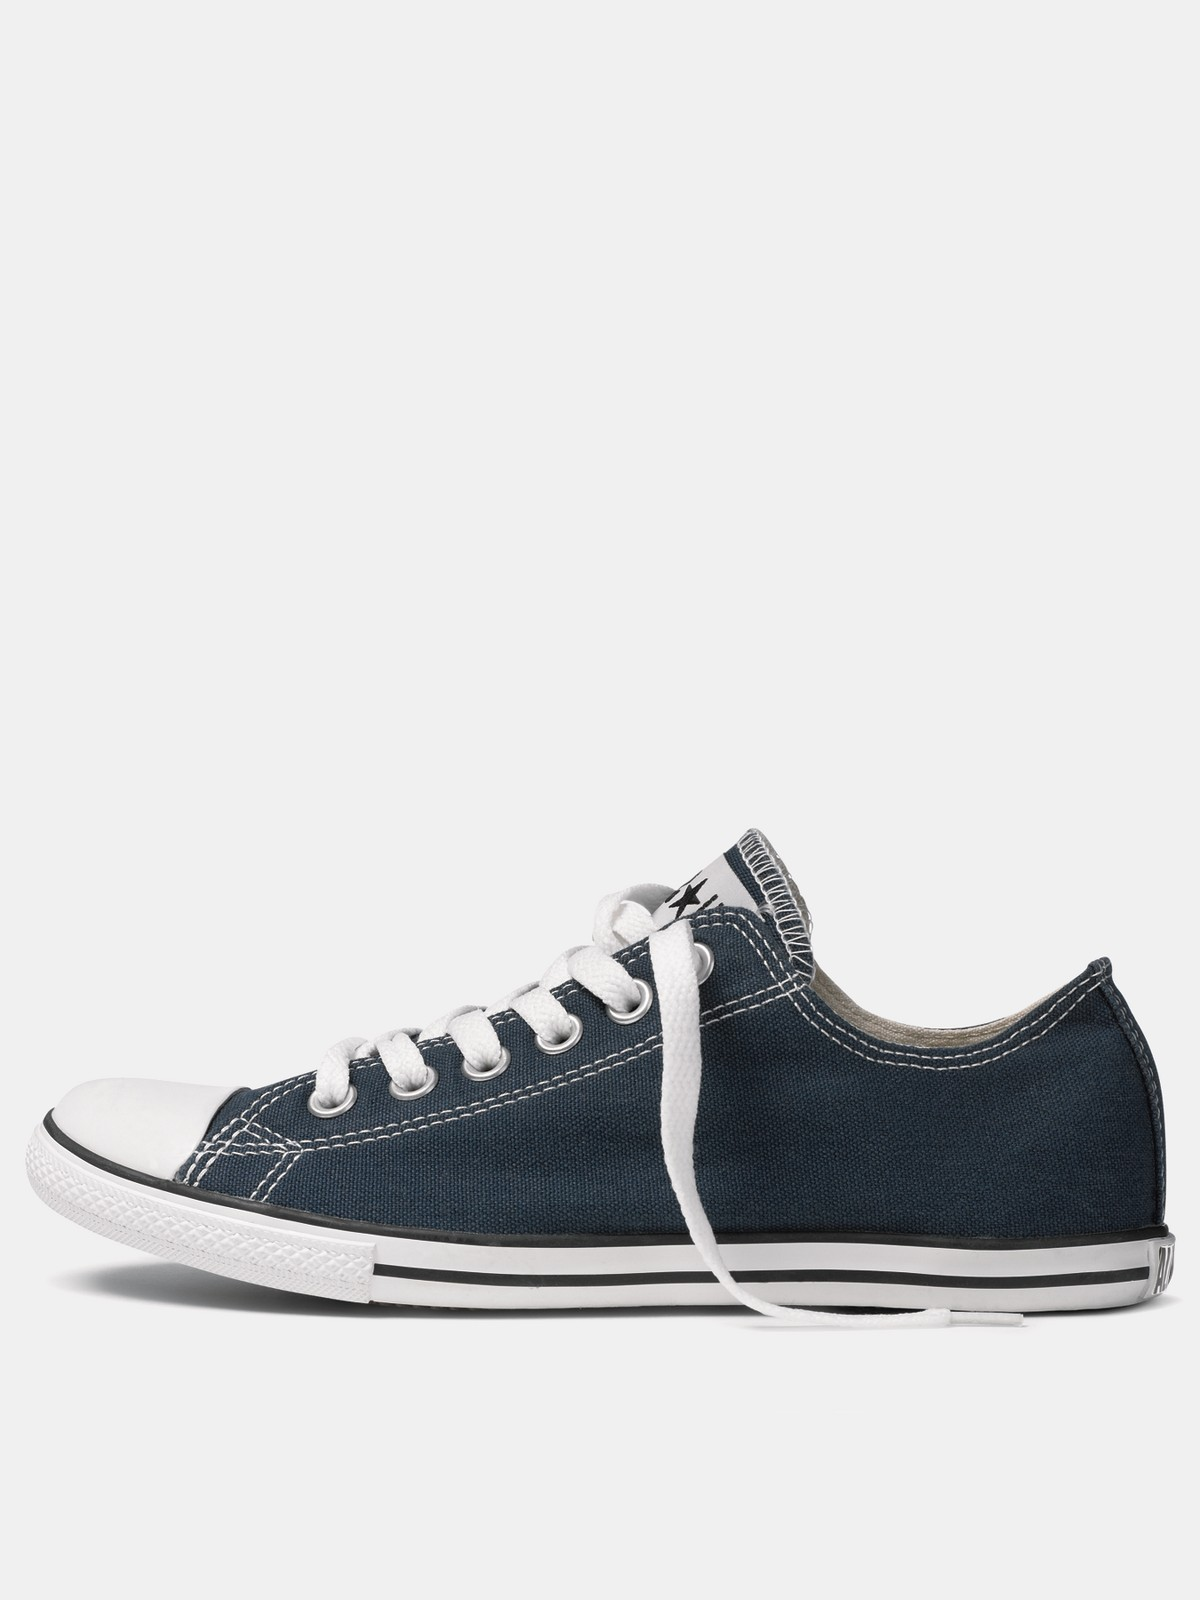 Image Result For Mens Casual Fashion Shoes